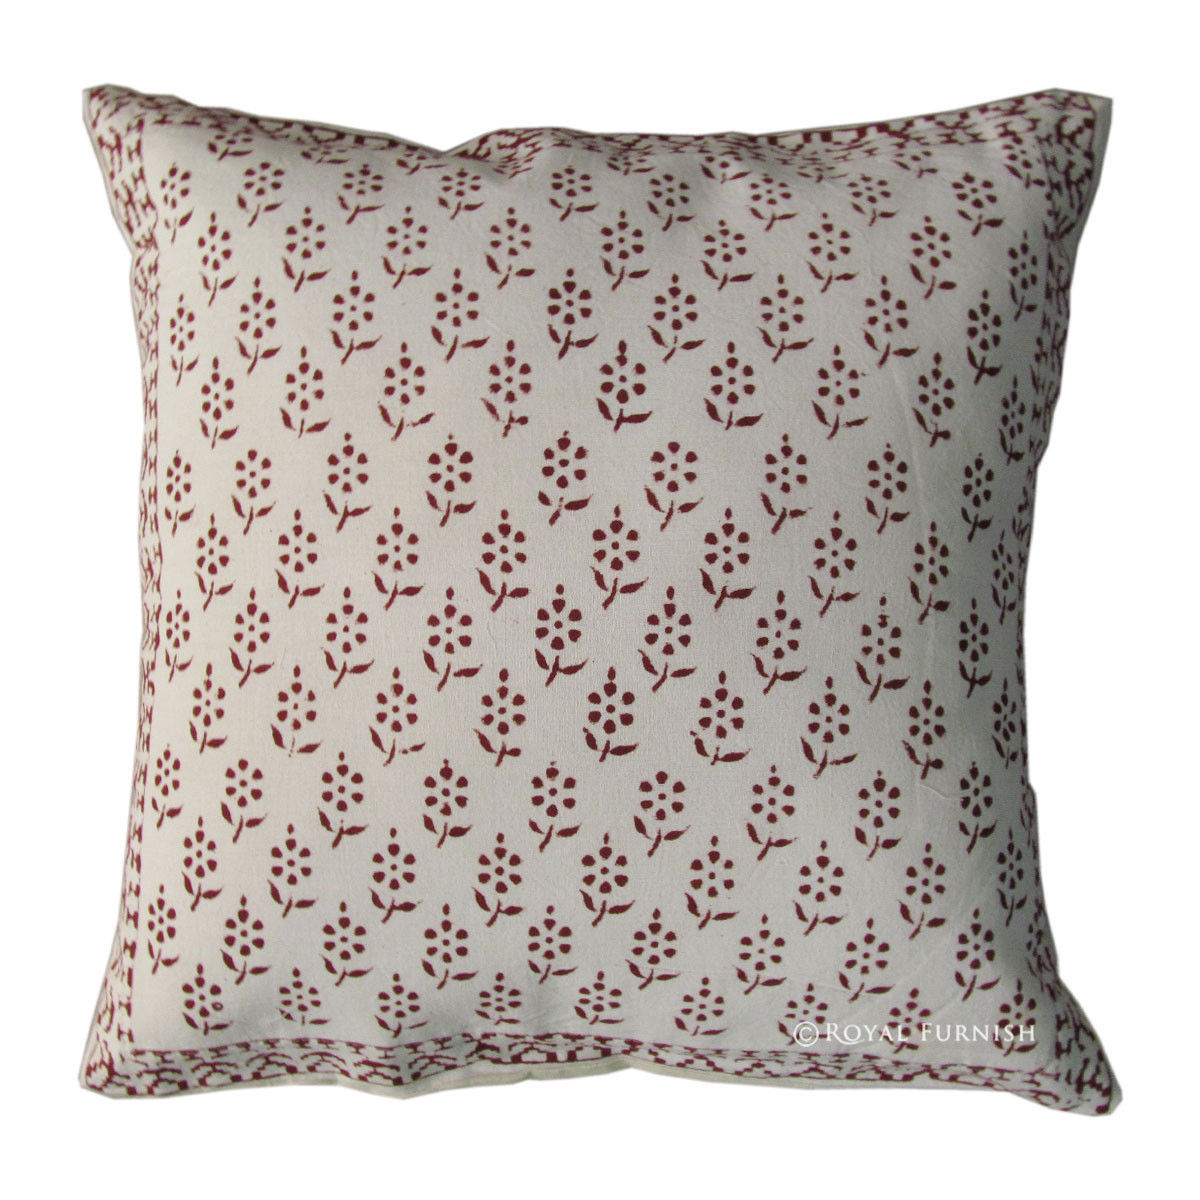 Decorative Pillow Cases White : White Hand Block Decorative Accent Floral Throw Pillow Case - RoyalFurnish.com